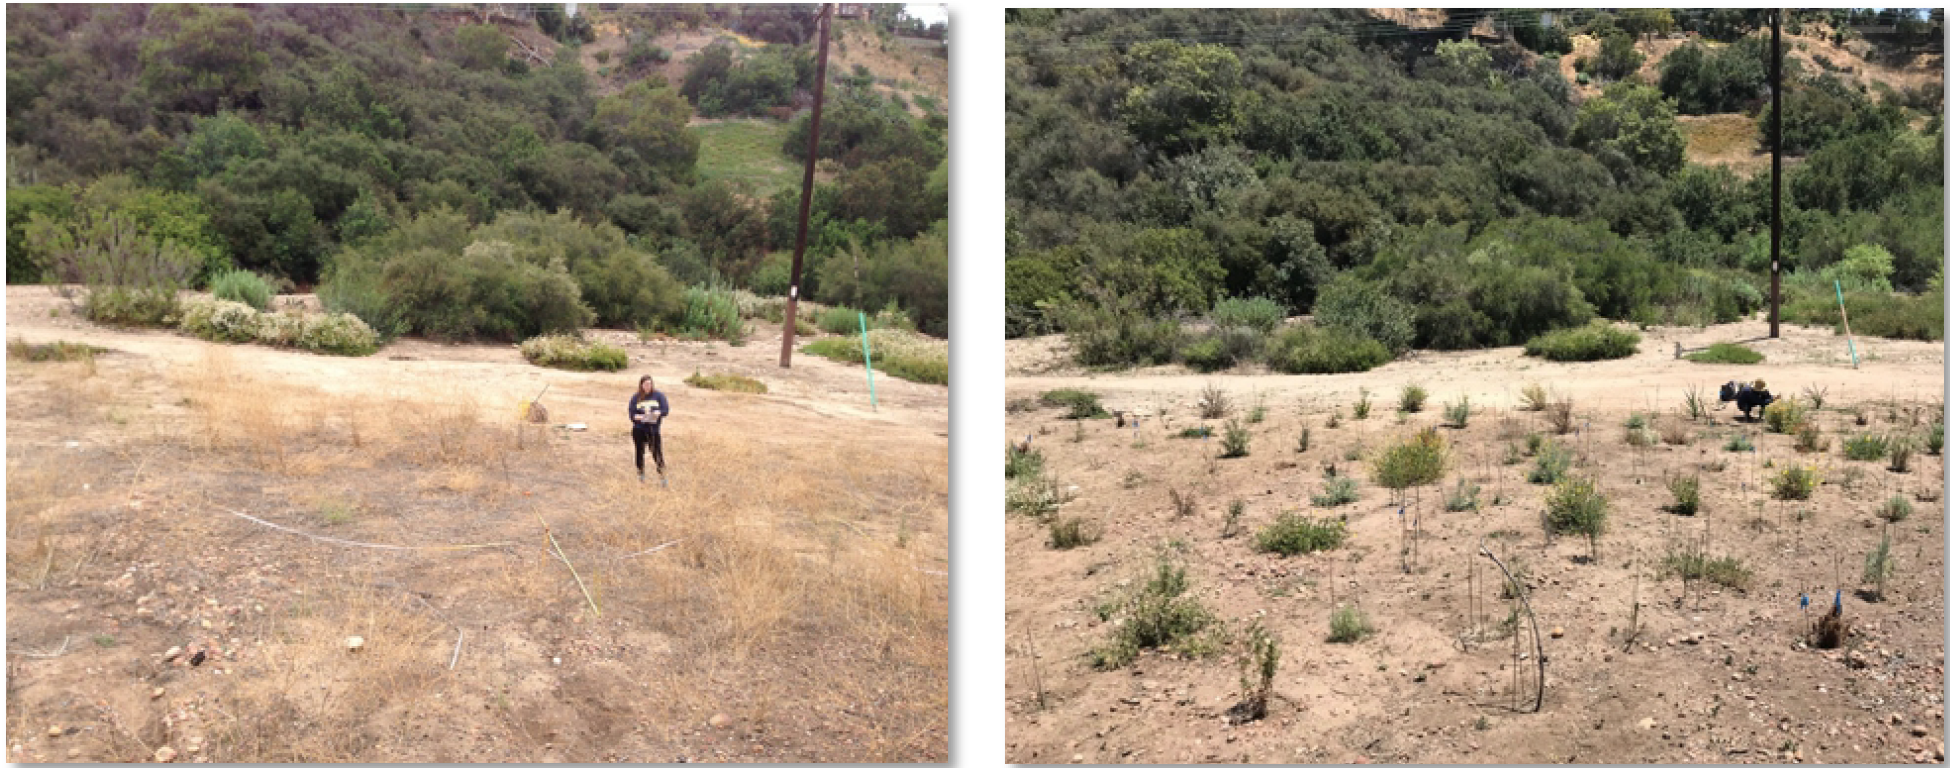 Manzanita Canyon restoration plot before planting in May 2016 (left), and six months after planting in May 2018 (right).